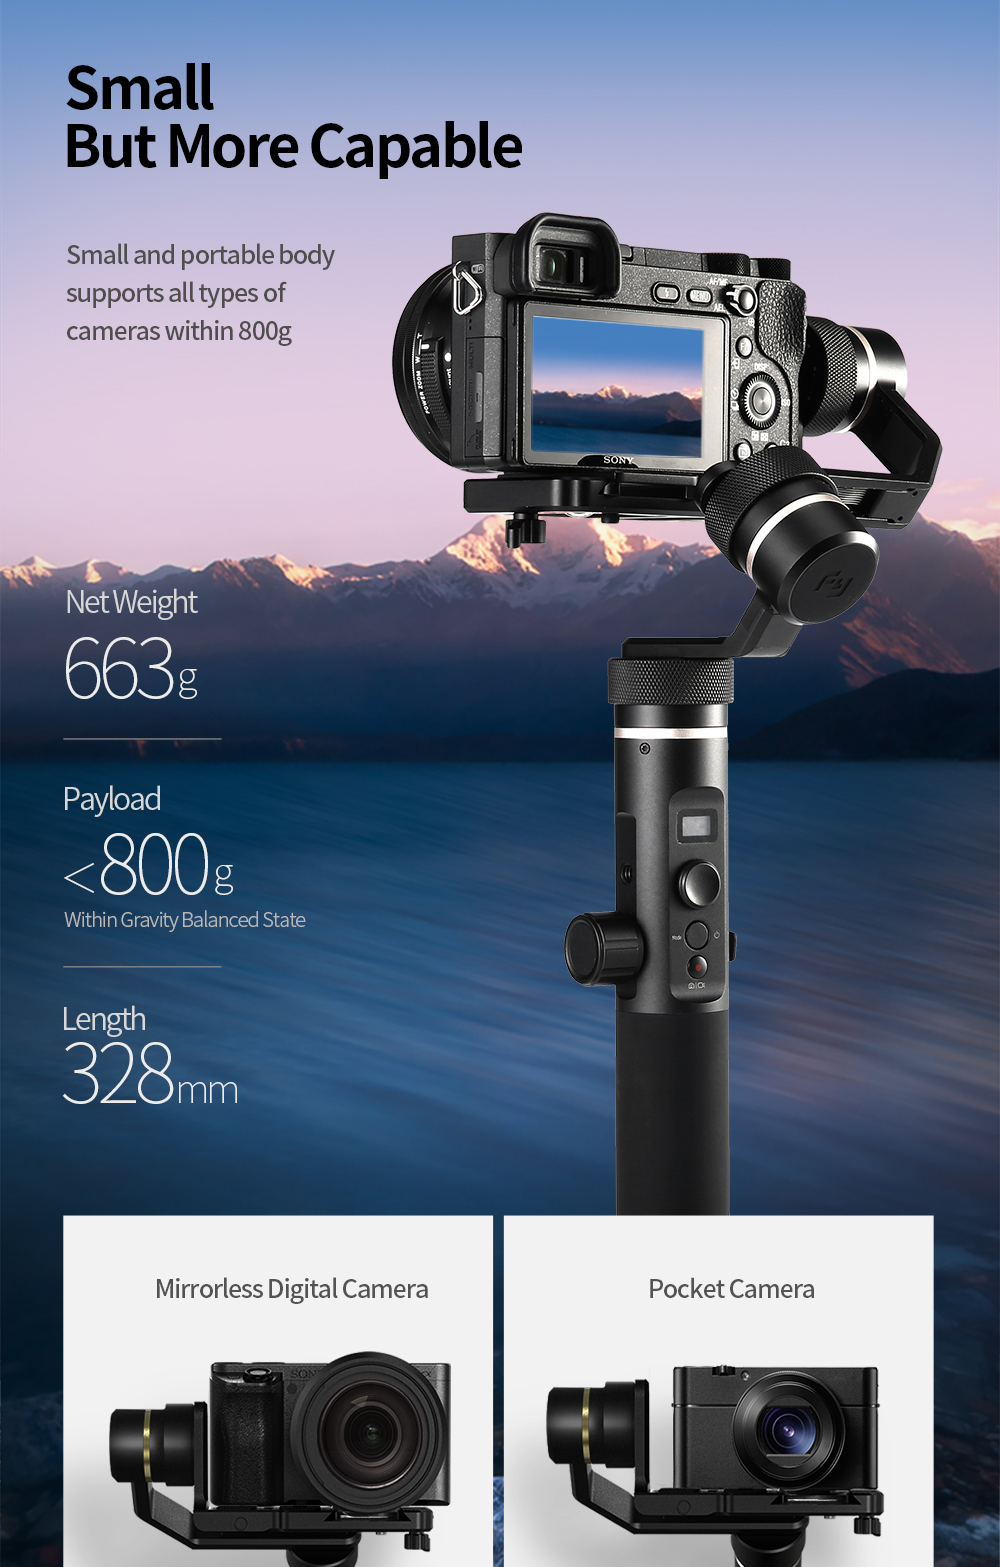 FeiyuTech G6 Plus 3-Axis Handheld Gimbal Stabilizer for Mirrorless Camera Pocket Camera GoPro Smartphone Payload 800g Feiyu G6P 2